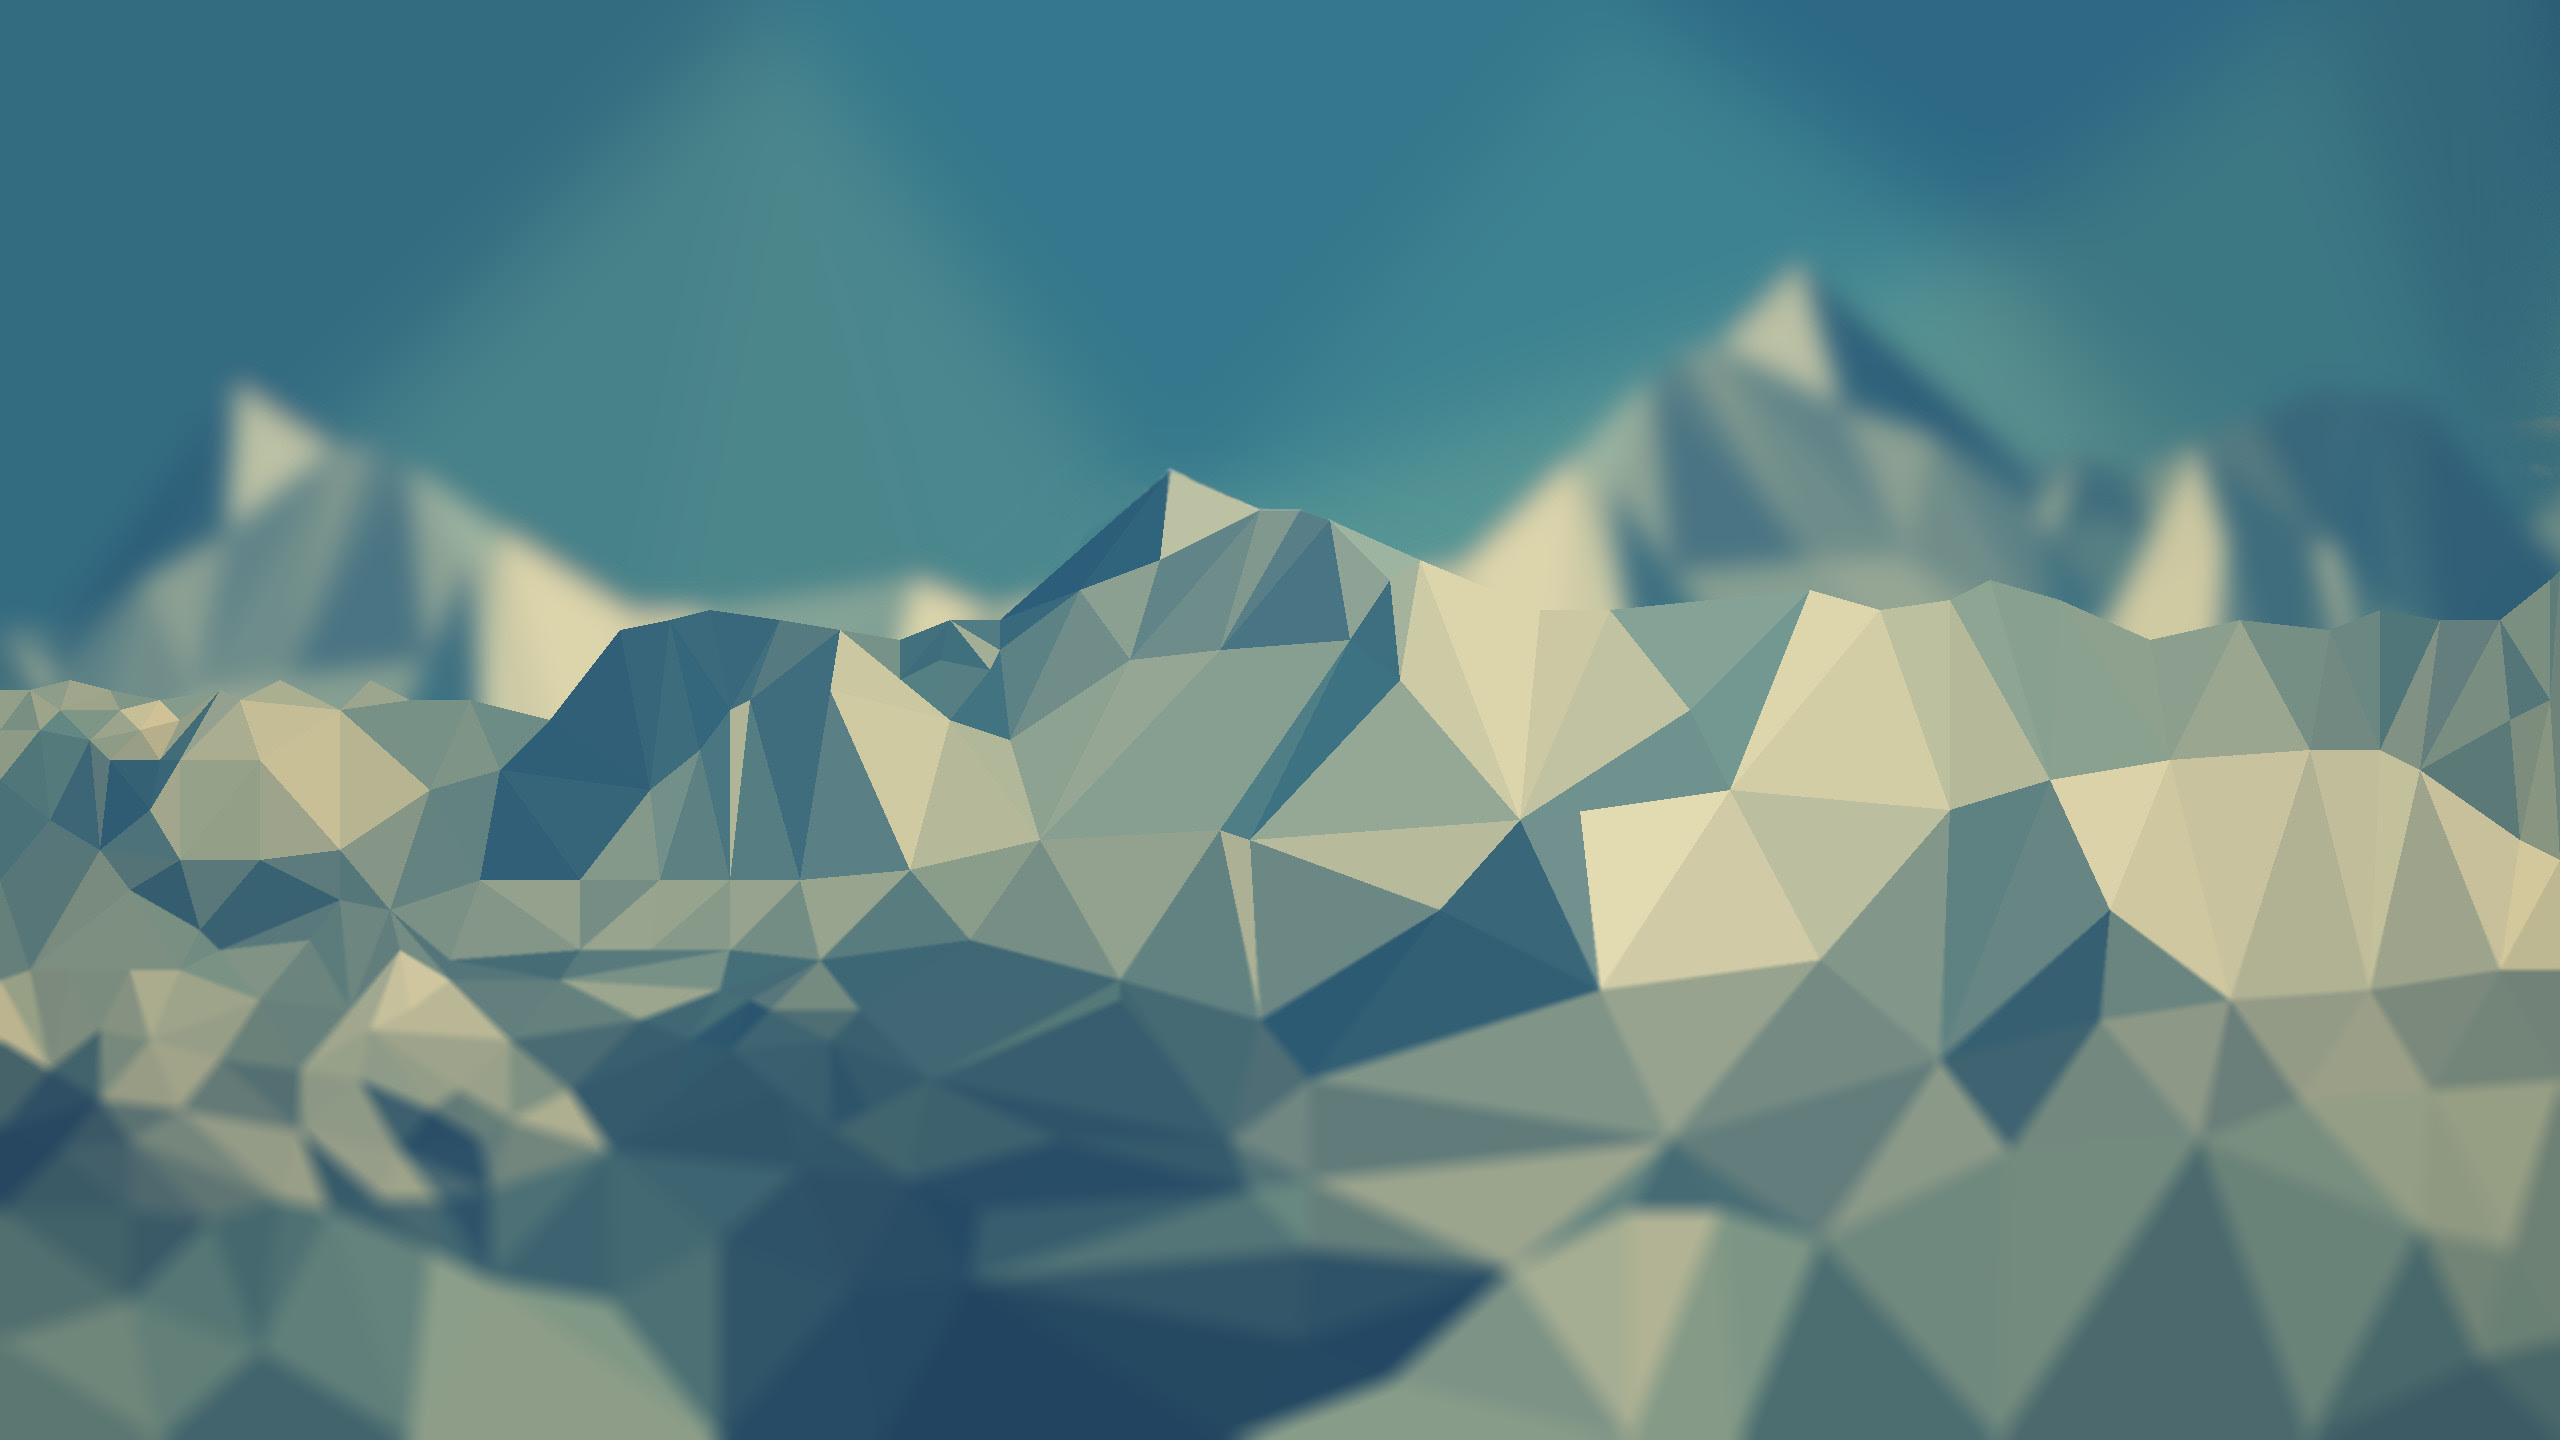 Low Poly Iphone Wallpaper